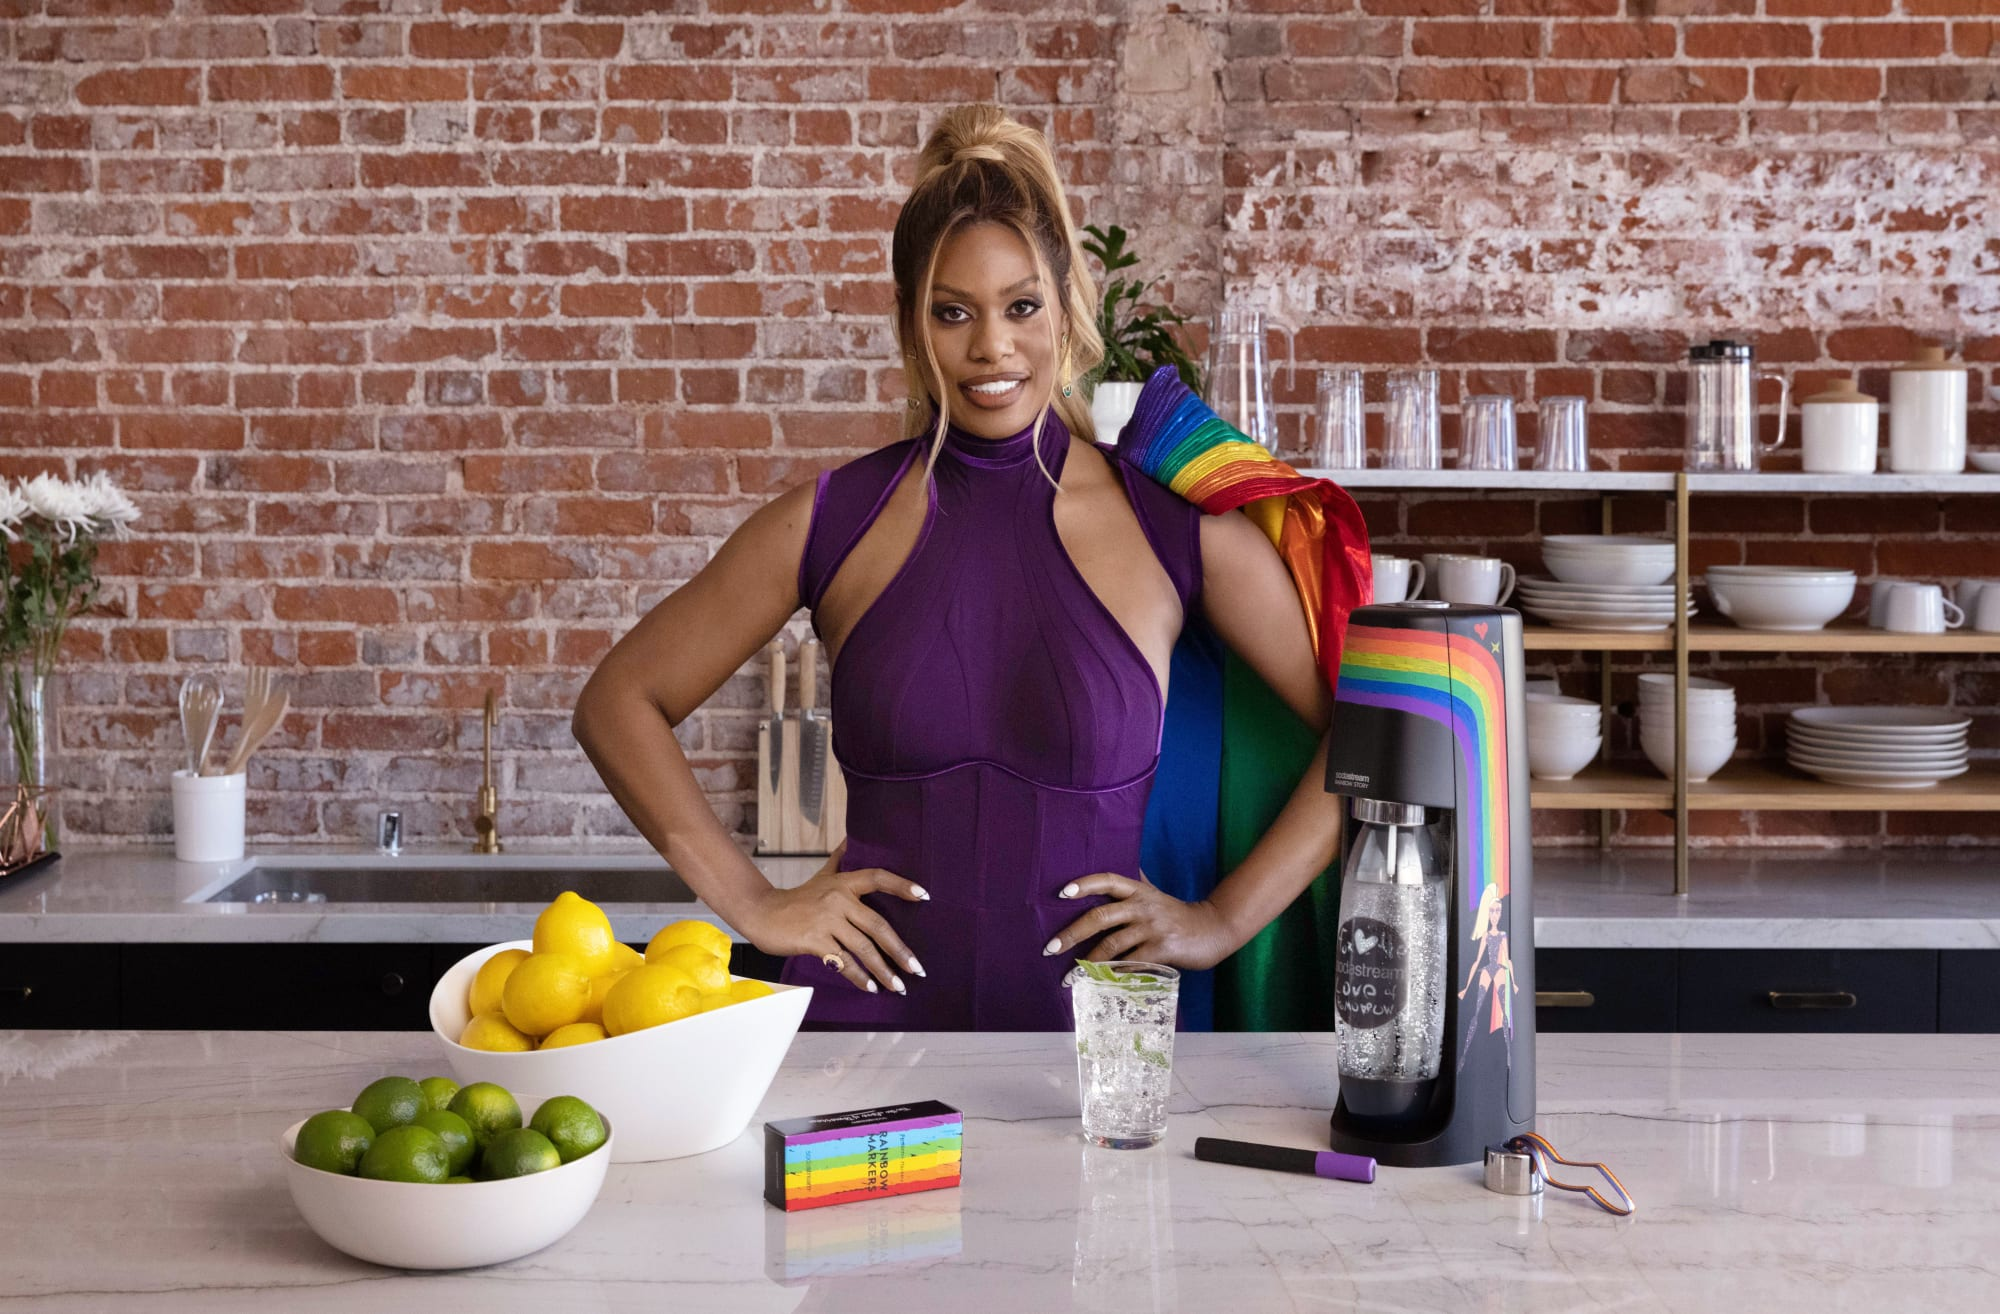 Laverne Cox and SodaStream make a difference one rainbow at a time